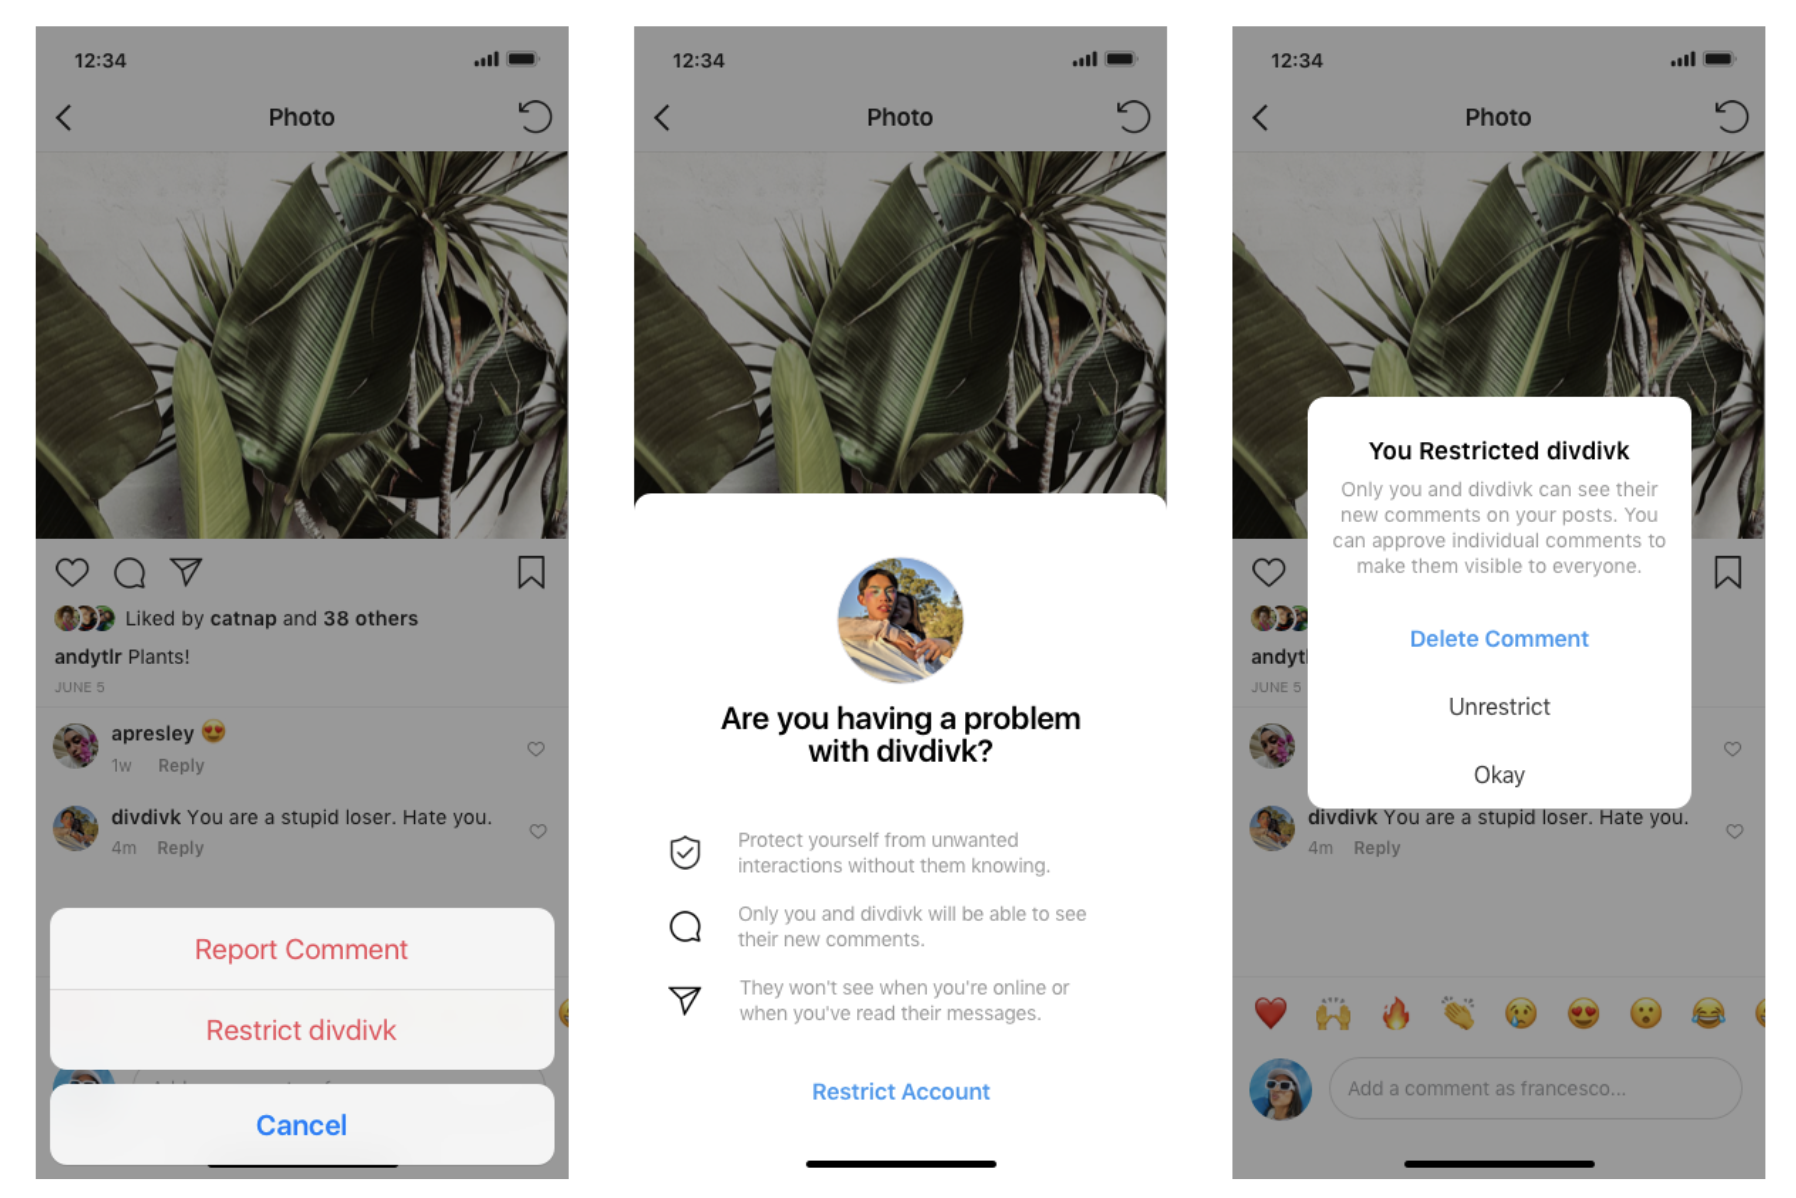 Instagram offensive comments bullying restrictions